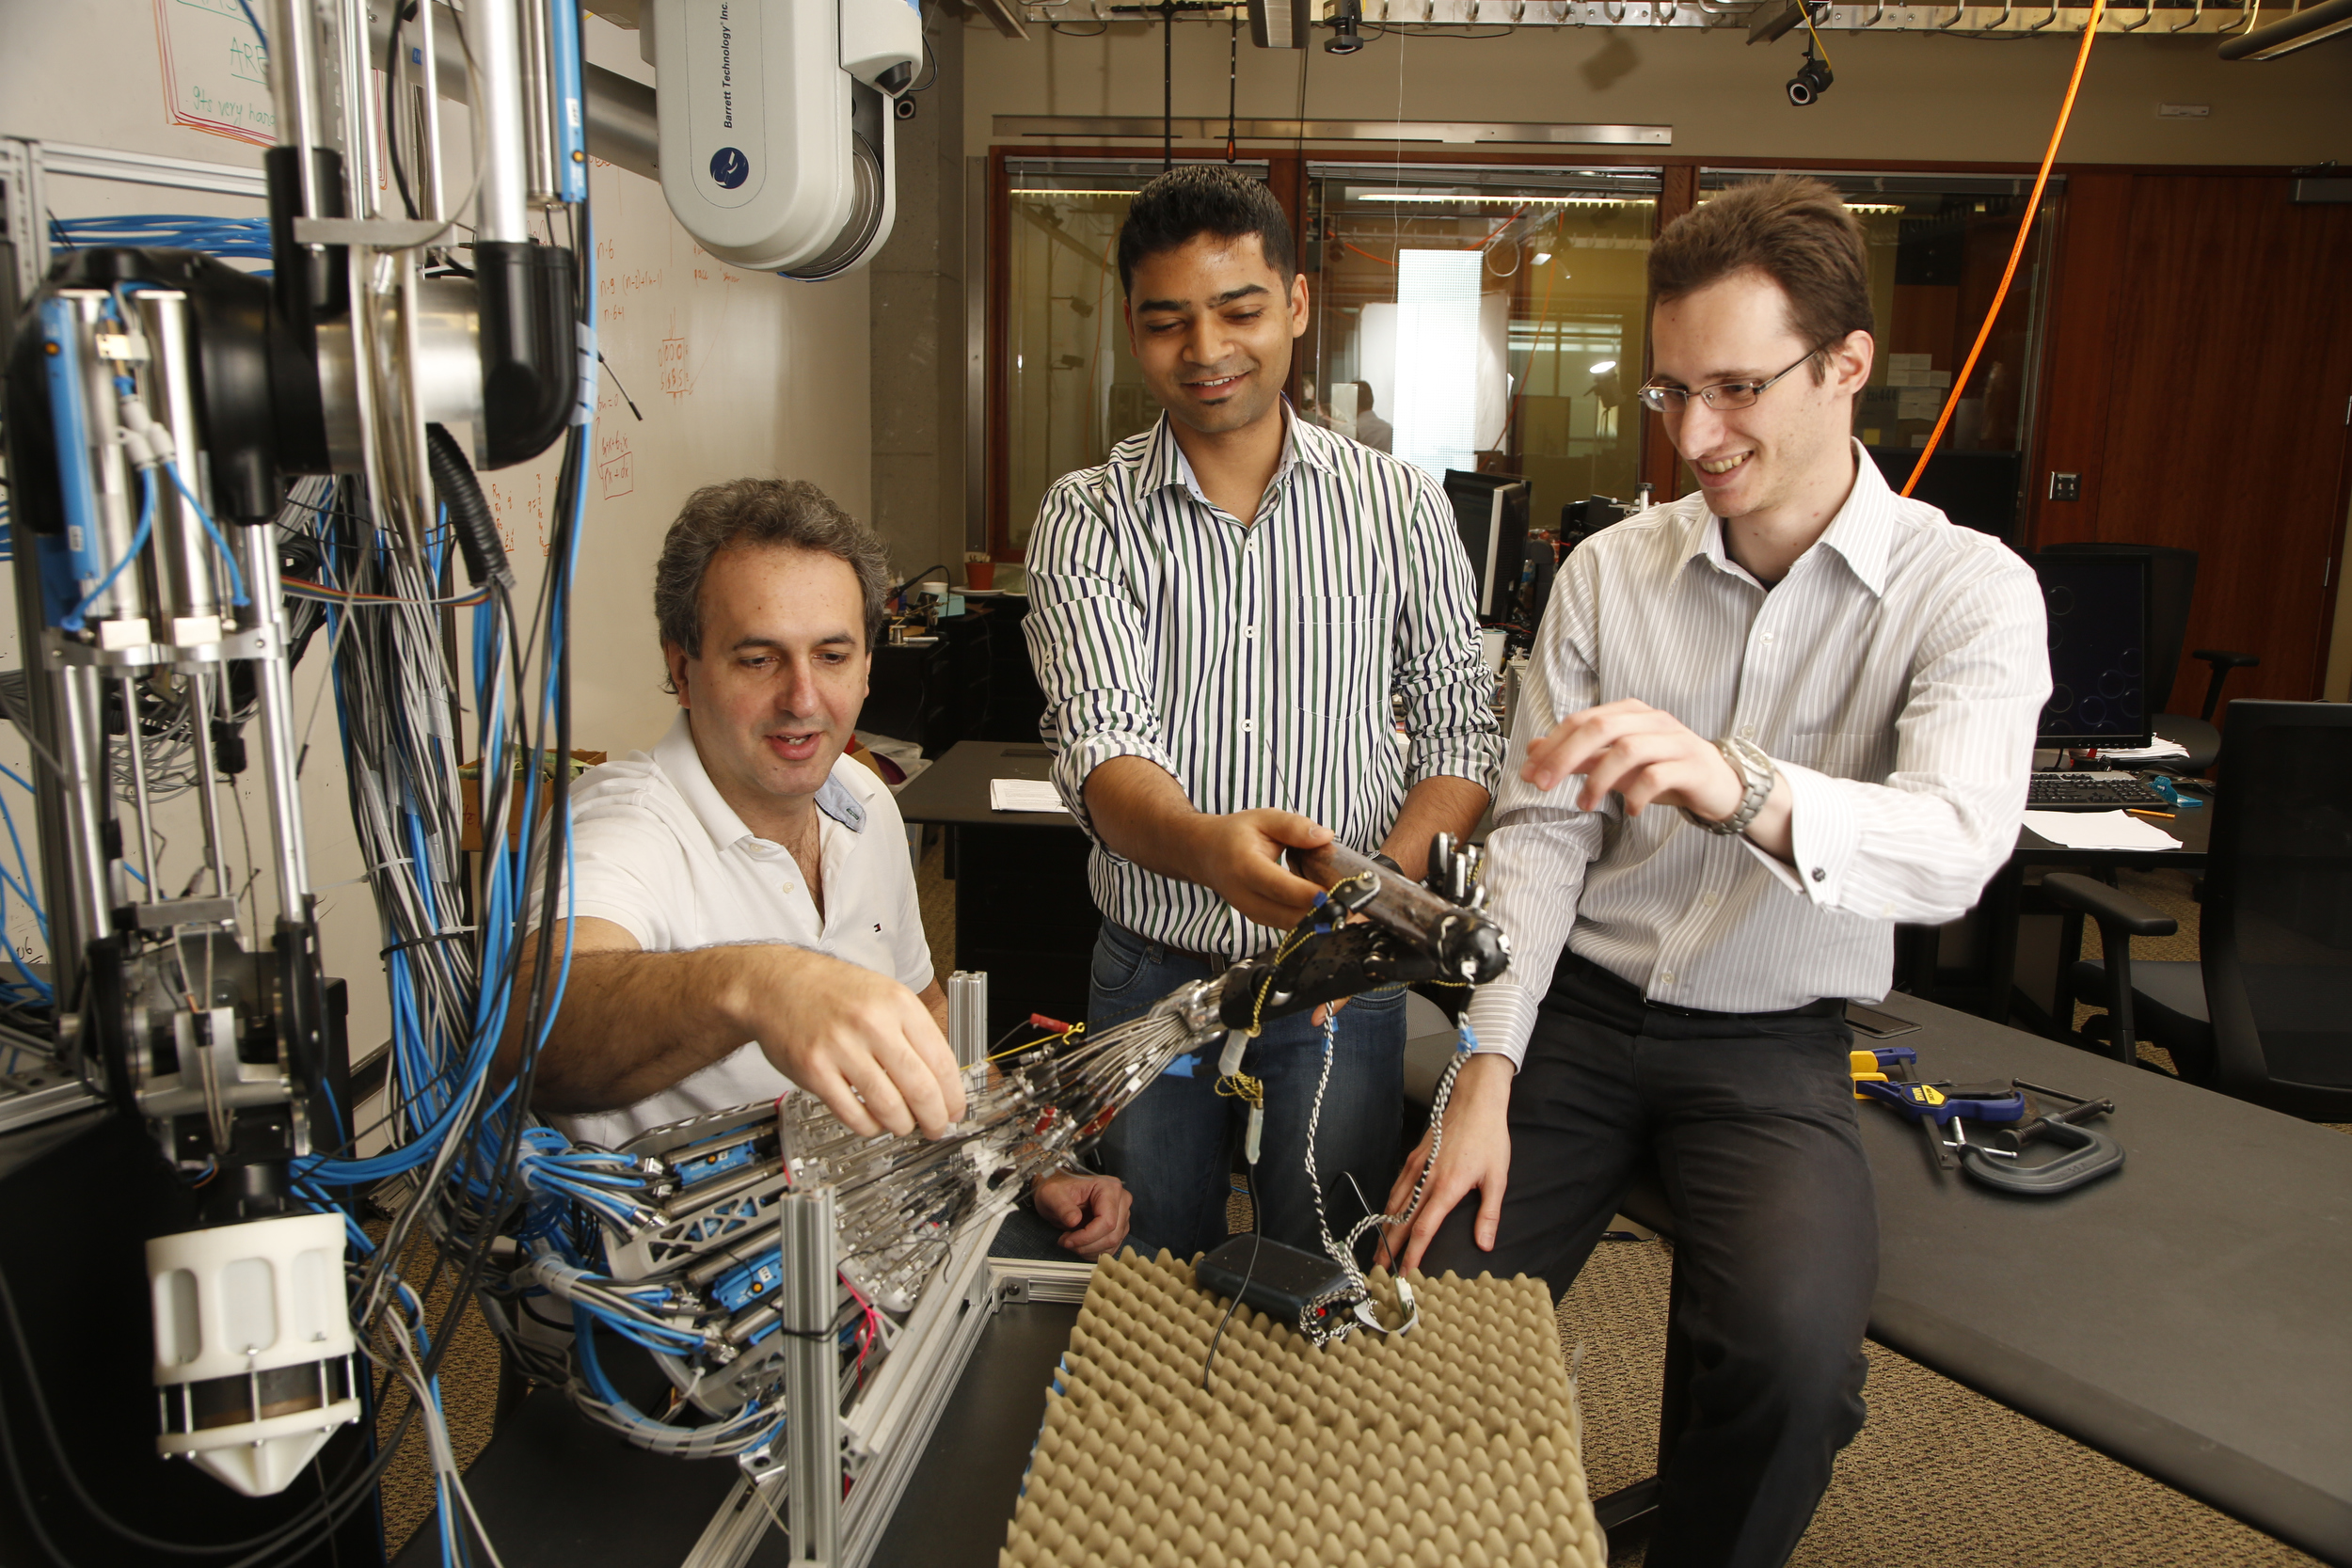 The research team from the UW Movement Control Laboratory includes (left to right) Emo Todorov, associate professor of computer science and engineering and of applied mathematics; Vikash Kumar, doctoral student in computer science and engineering; and Sergey Levine, assistant professor of computer science and engineering.University of Washington